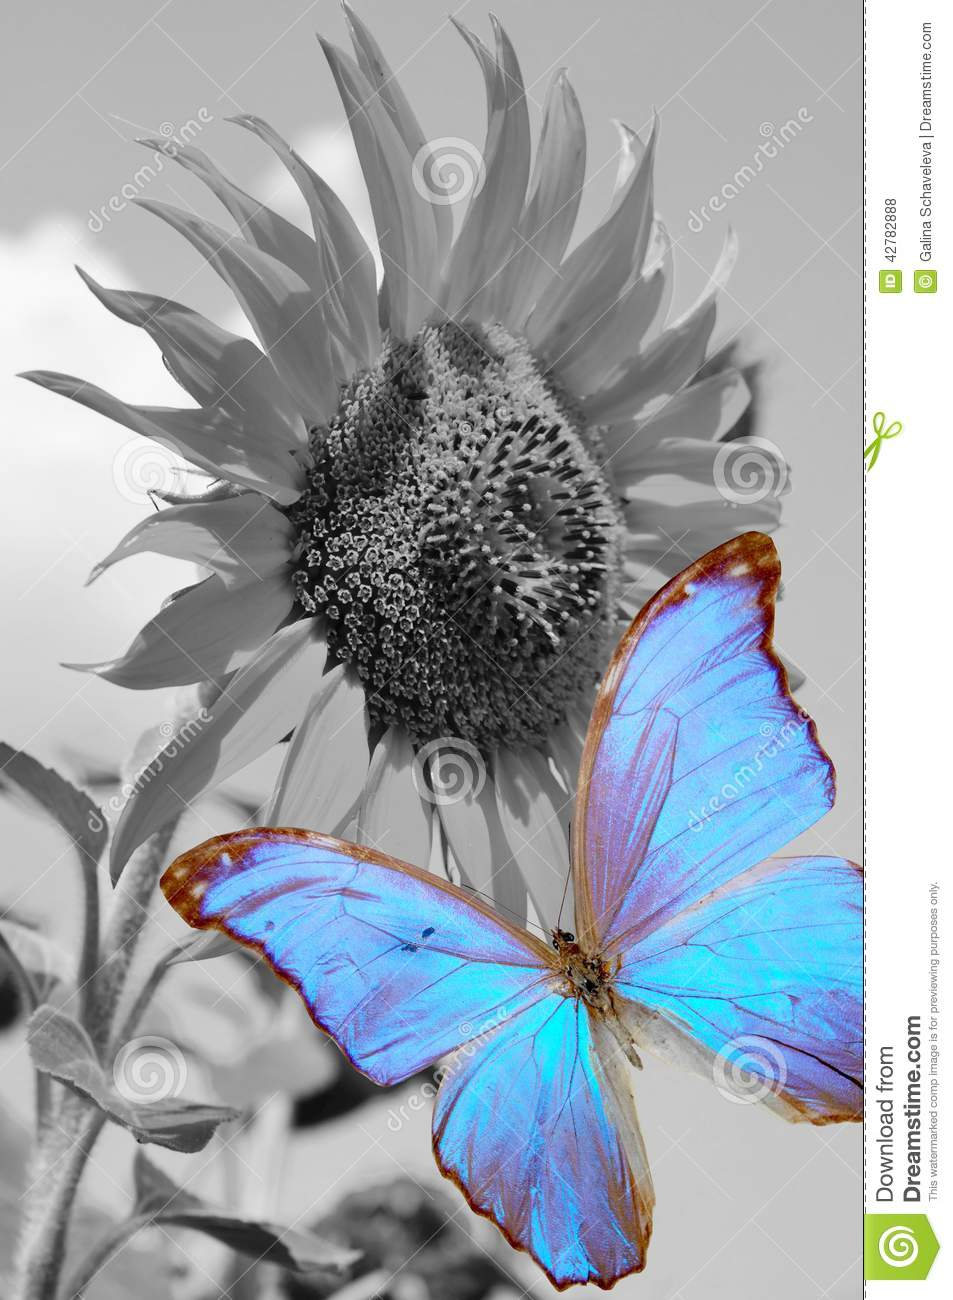 Sunflower And Blue Butterfly Stock Photo - Image: 42782888